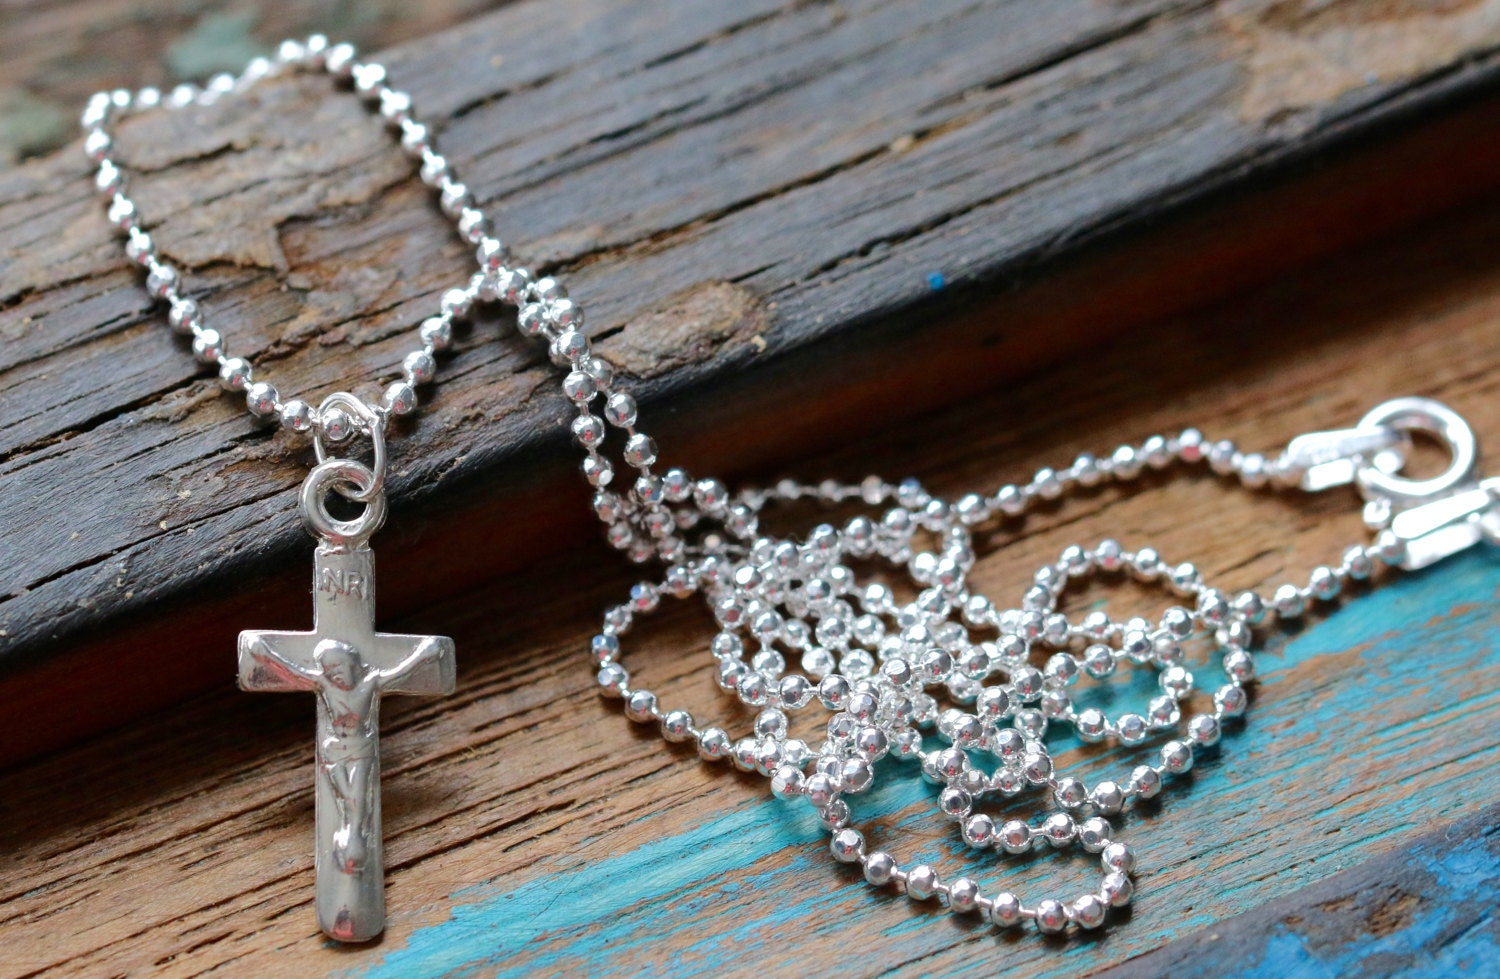 Italian Sterling Silver Crucifix Necklace, 30-24-18 1 5mm Ball Chain or